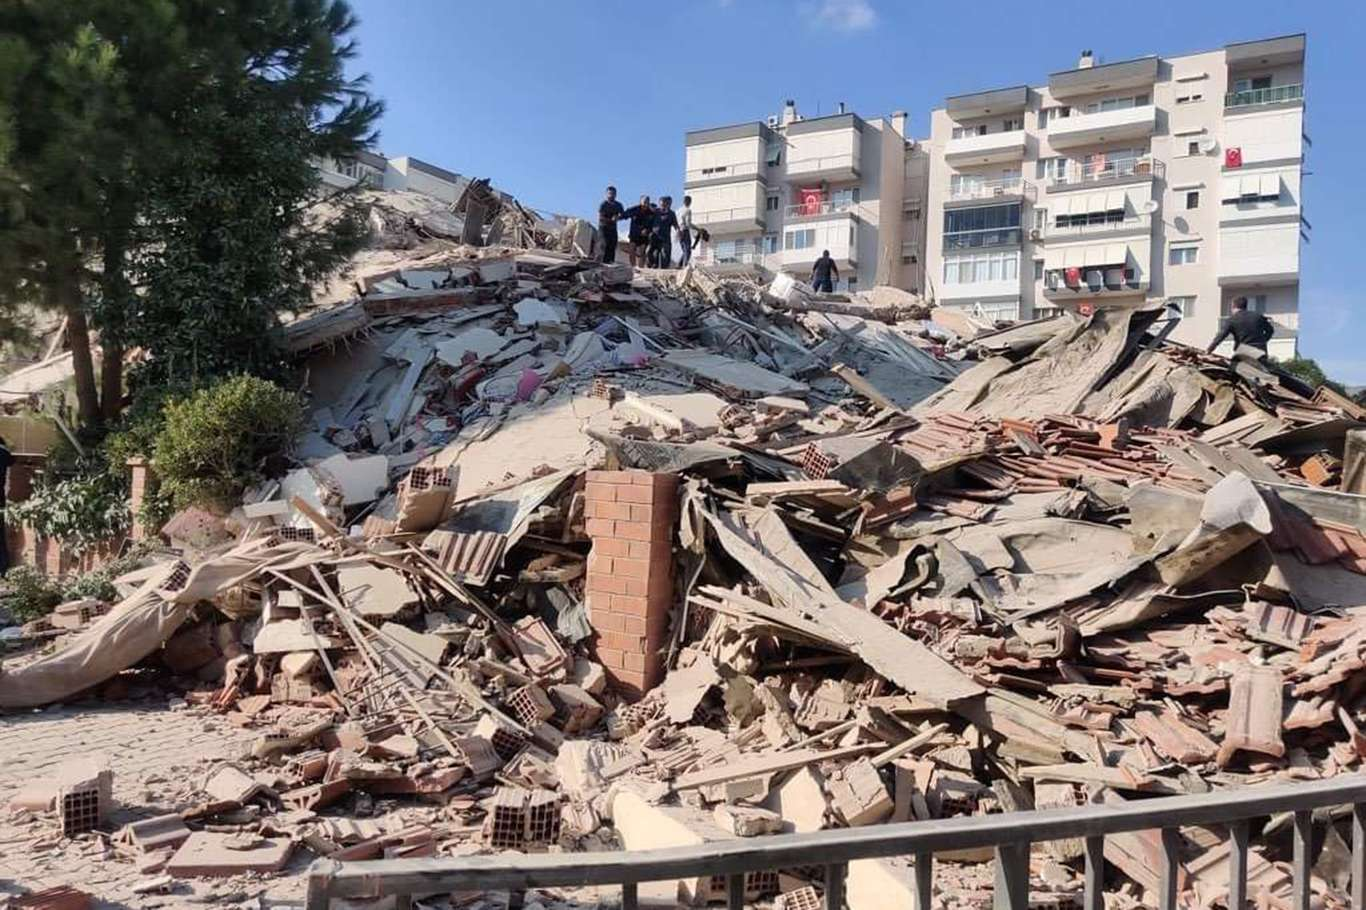 Turkey shares different information on earthquake